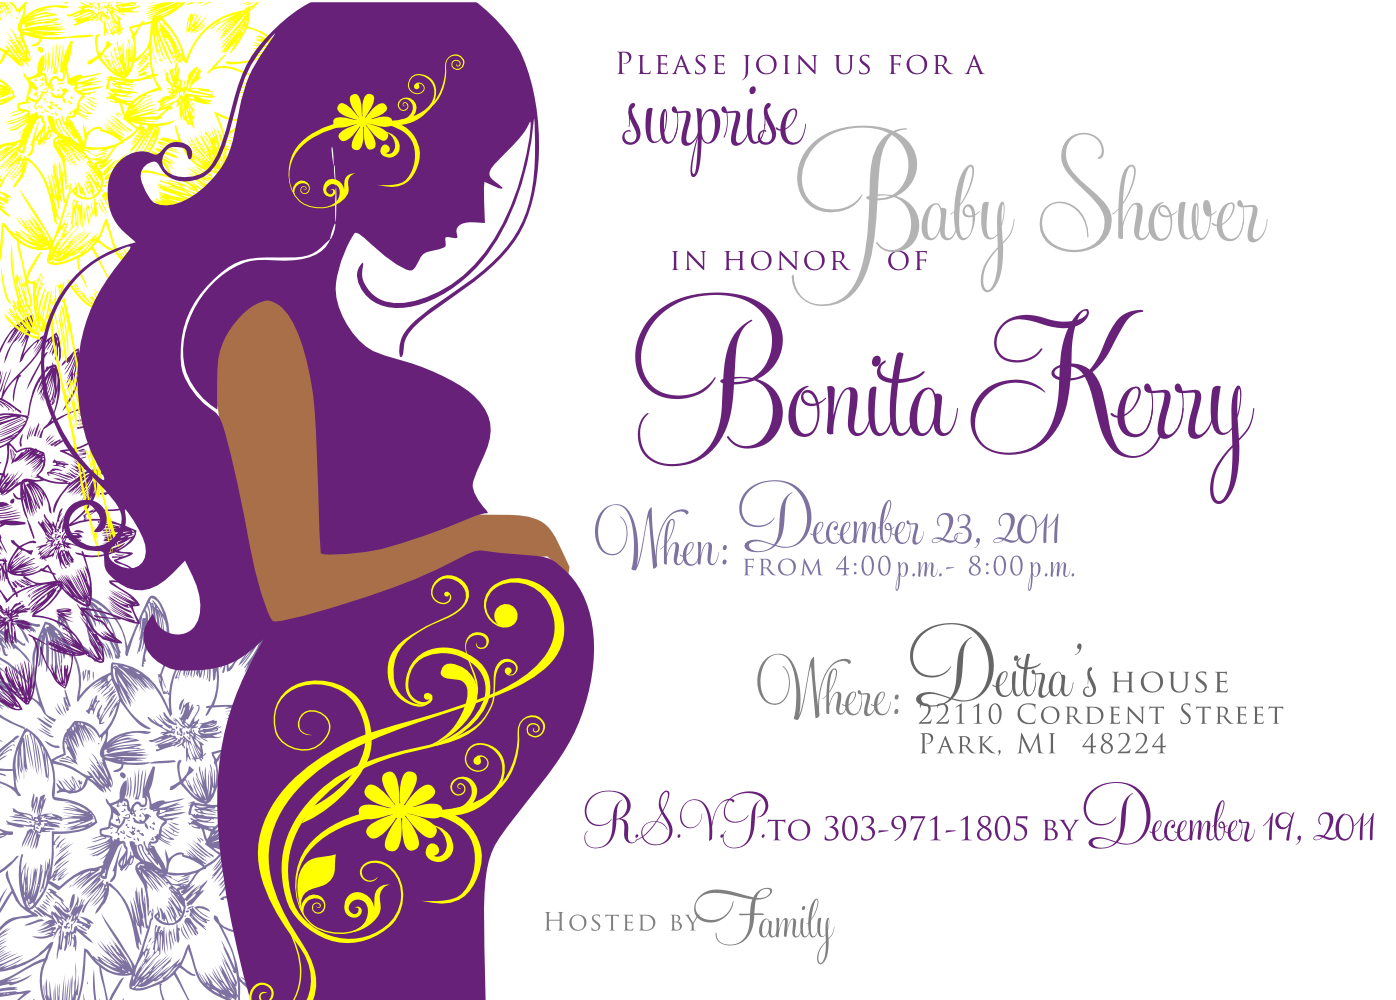 Baby Shower Flyer Templates event invitation party invitation – Baby Shower Flyer Template Free